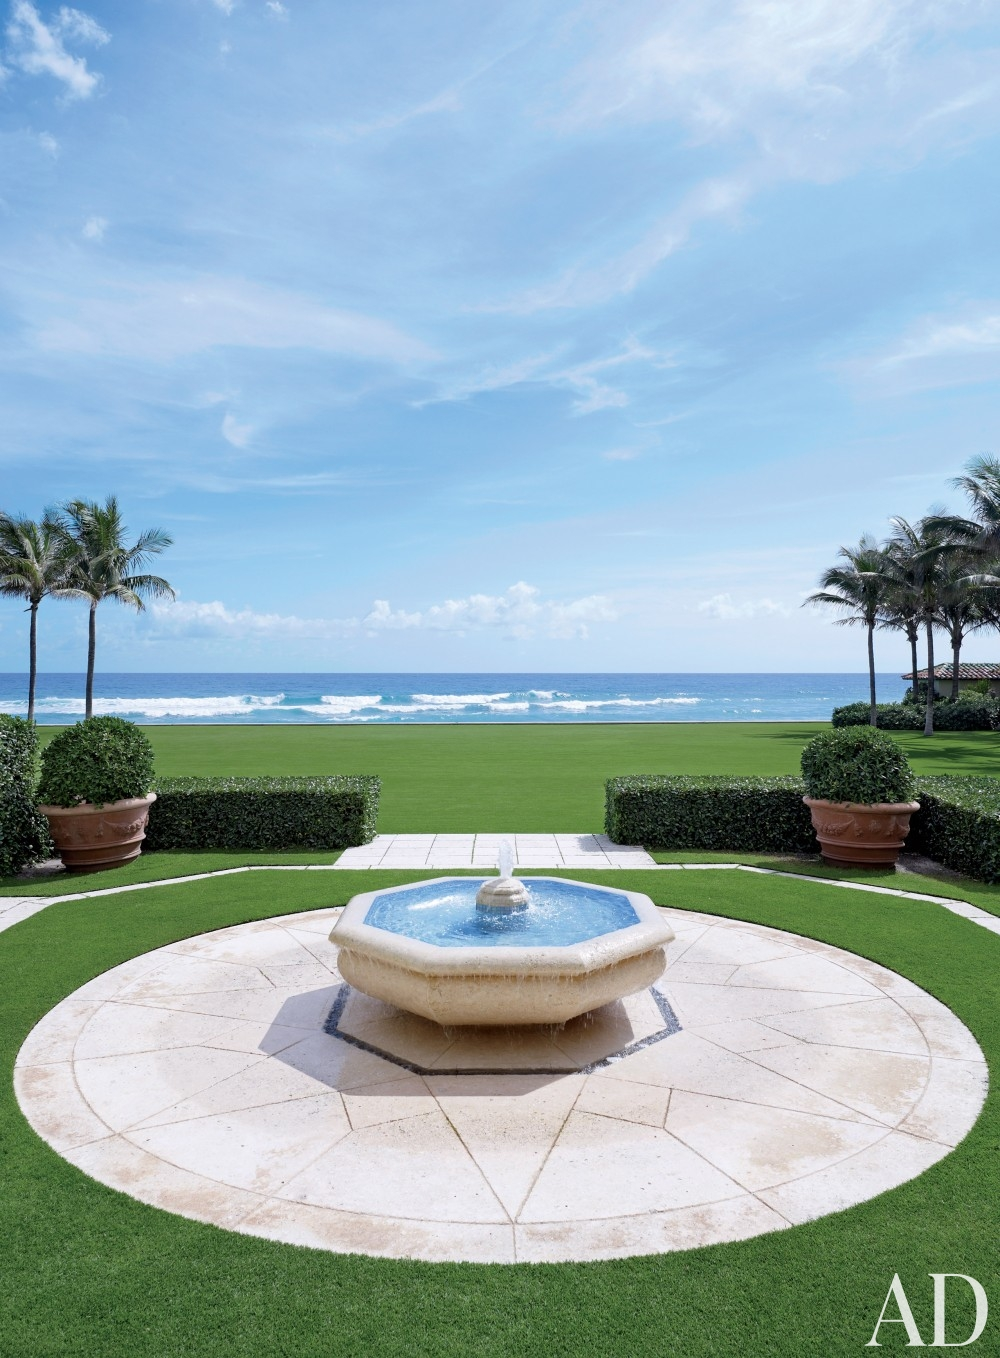 traditional-outdoor-space-david-easton-inc-palm-beach-fl-201411-3.jpg.jpg_1000-watermarked.jpg